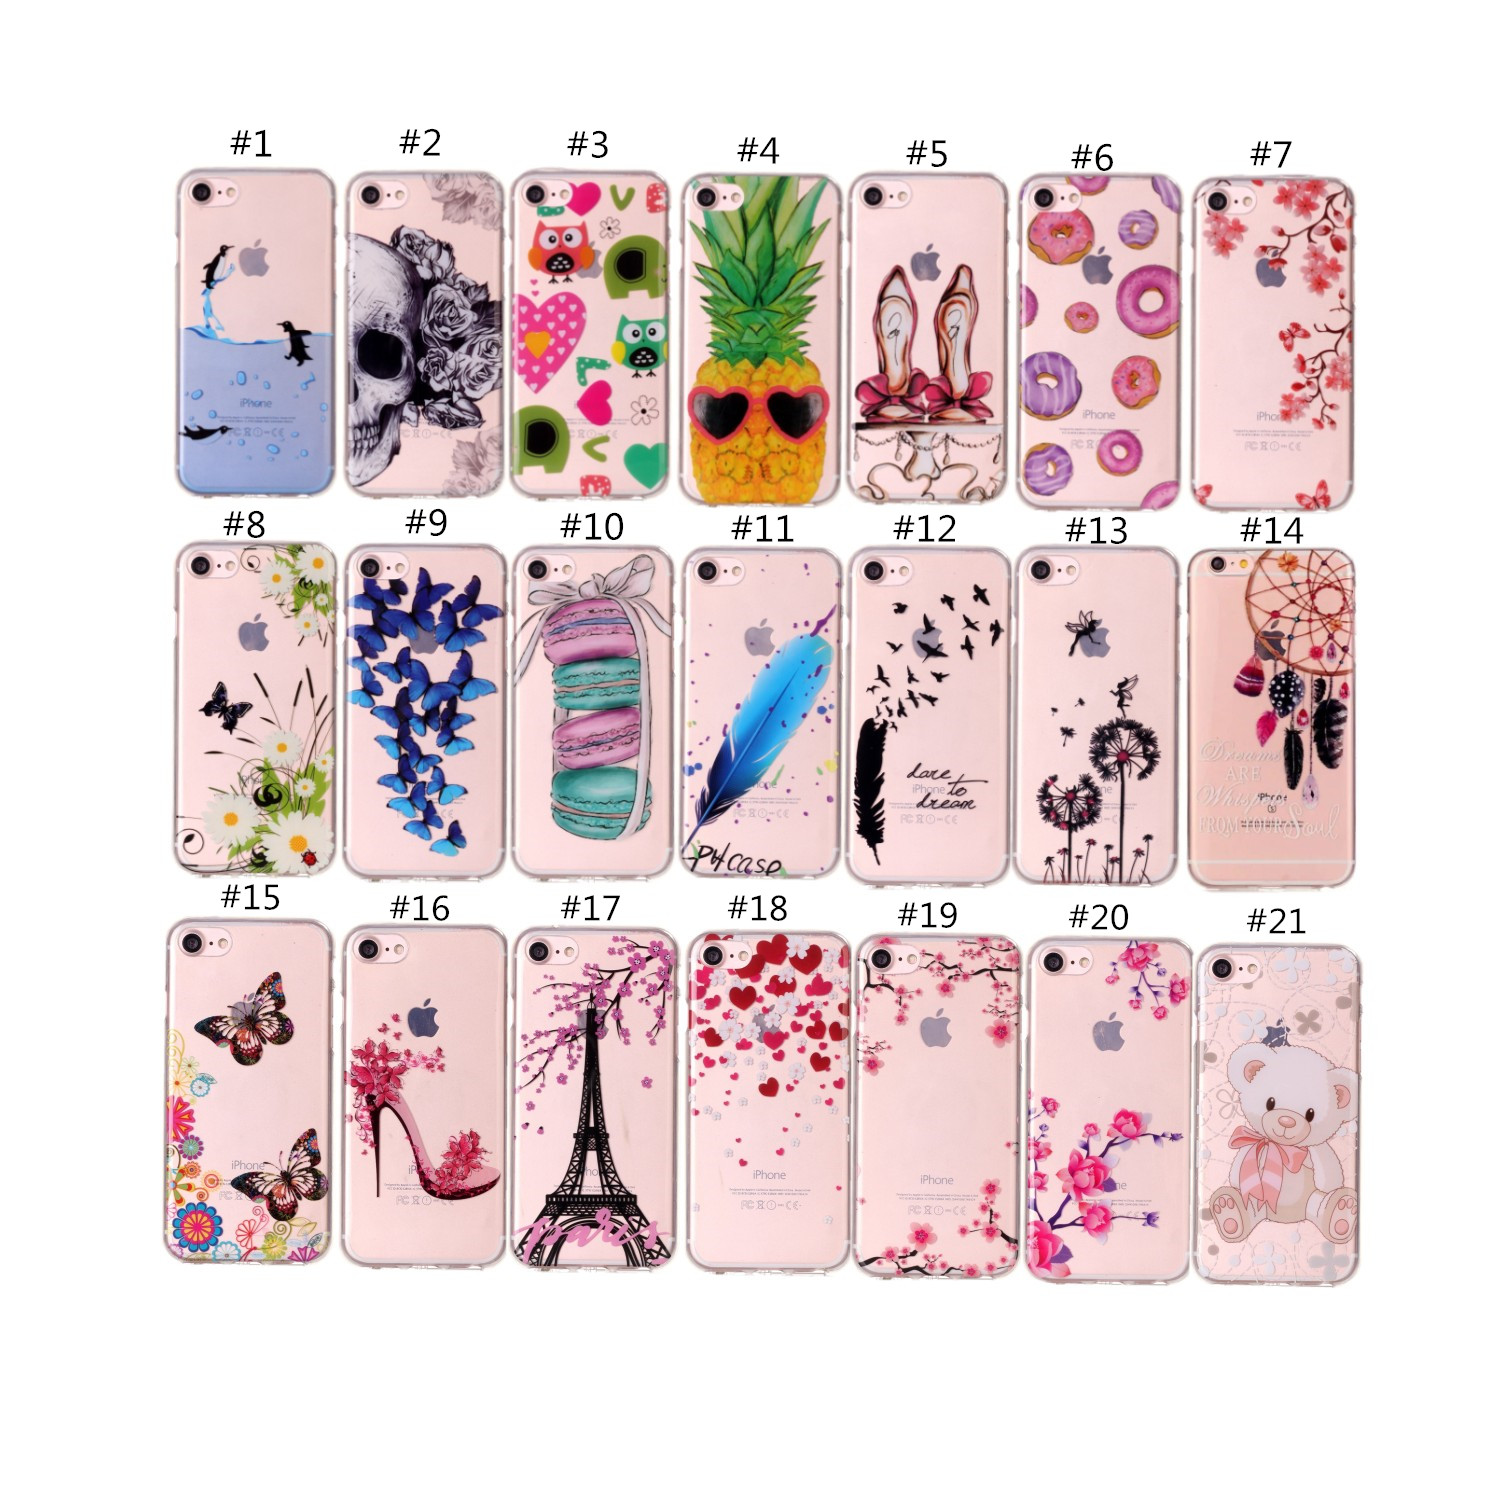 Pretty Printed Soft TPU Cover For iPhone SE 6 7 8 Plus X iPod Touch 5th&6th